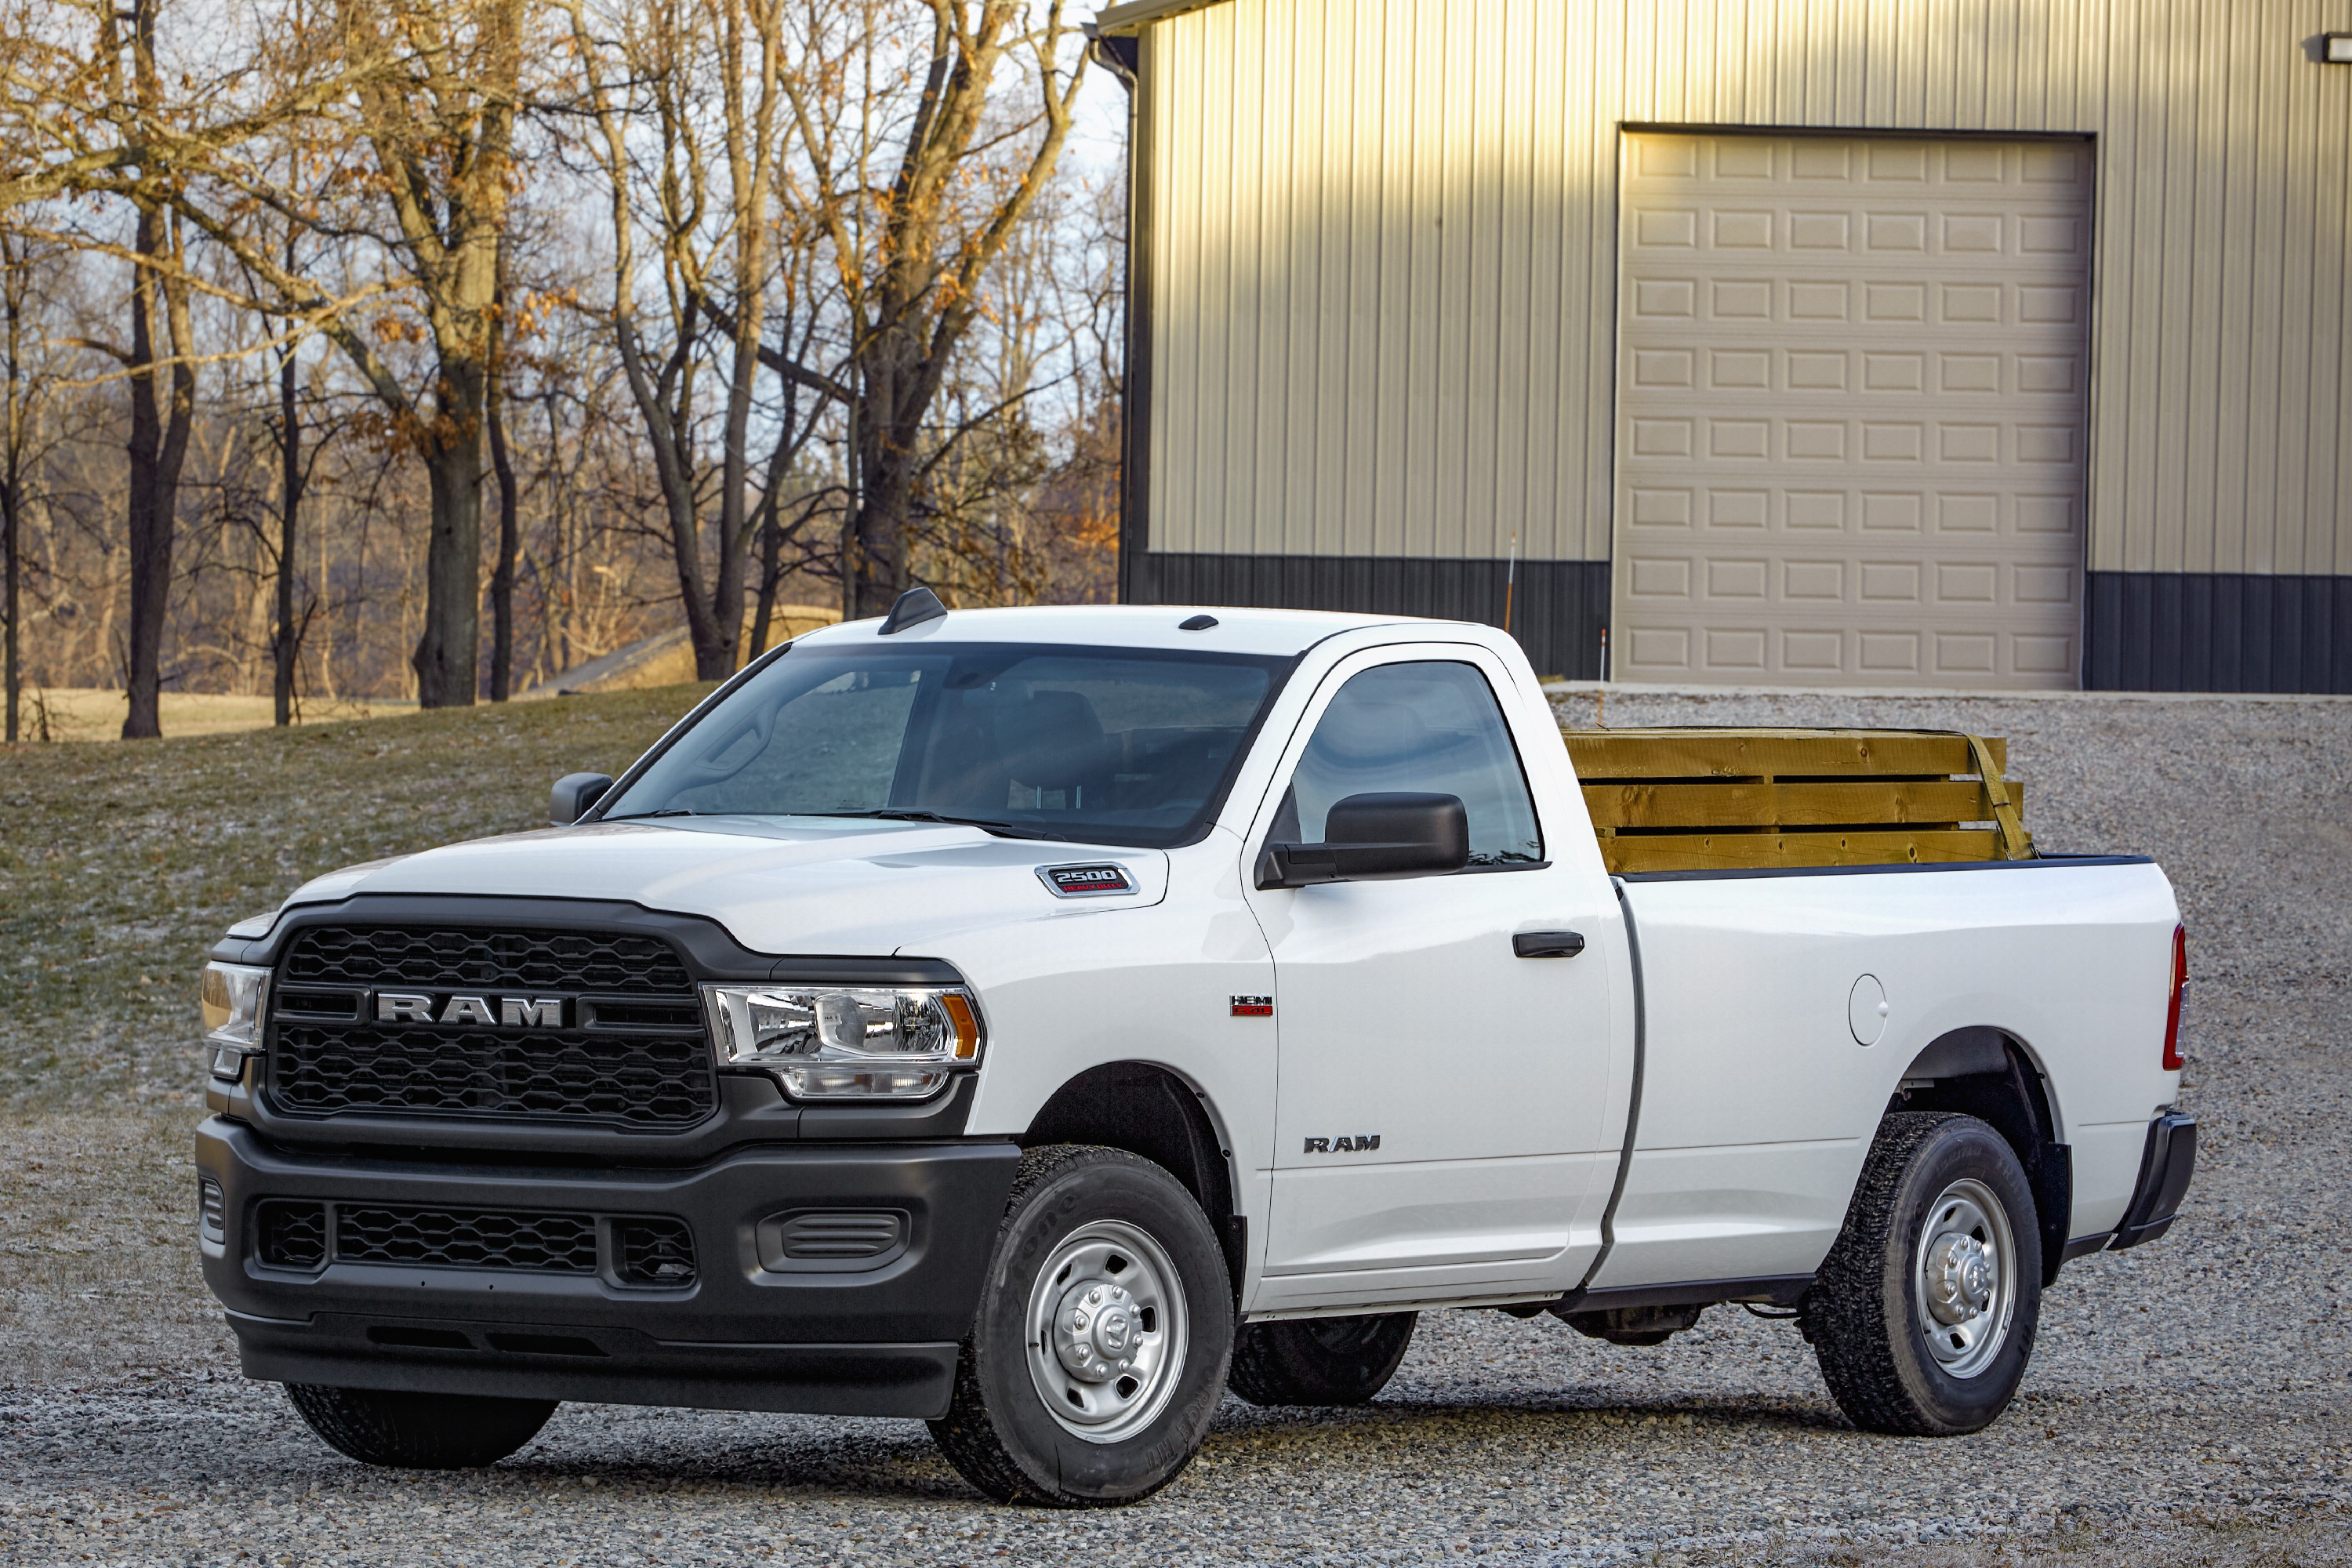 Ram 2500 Towing Capacity >> Ram Heavy Duty Truck Lineup For 2019